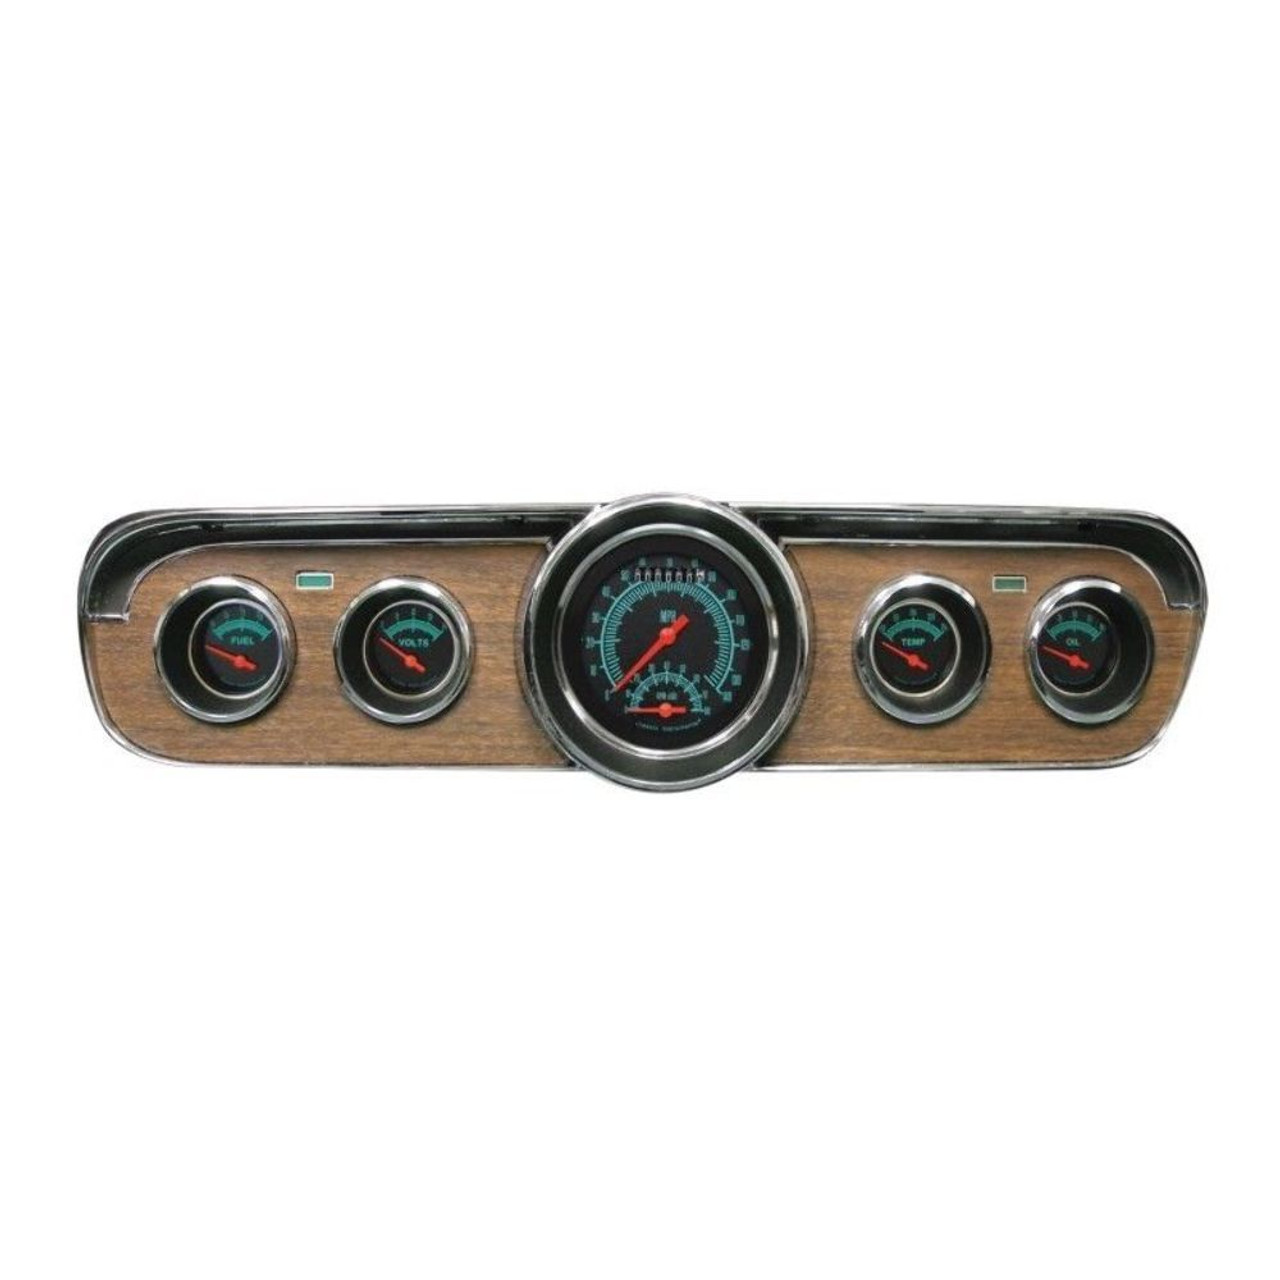 Classic Instruments Dash Gauge Package, Black, Complete Fits 1967-1968 Ford Mustang